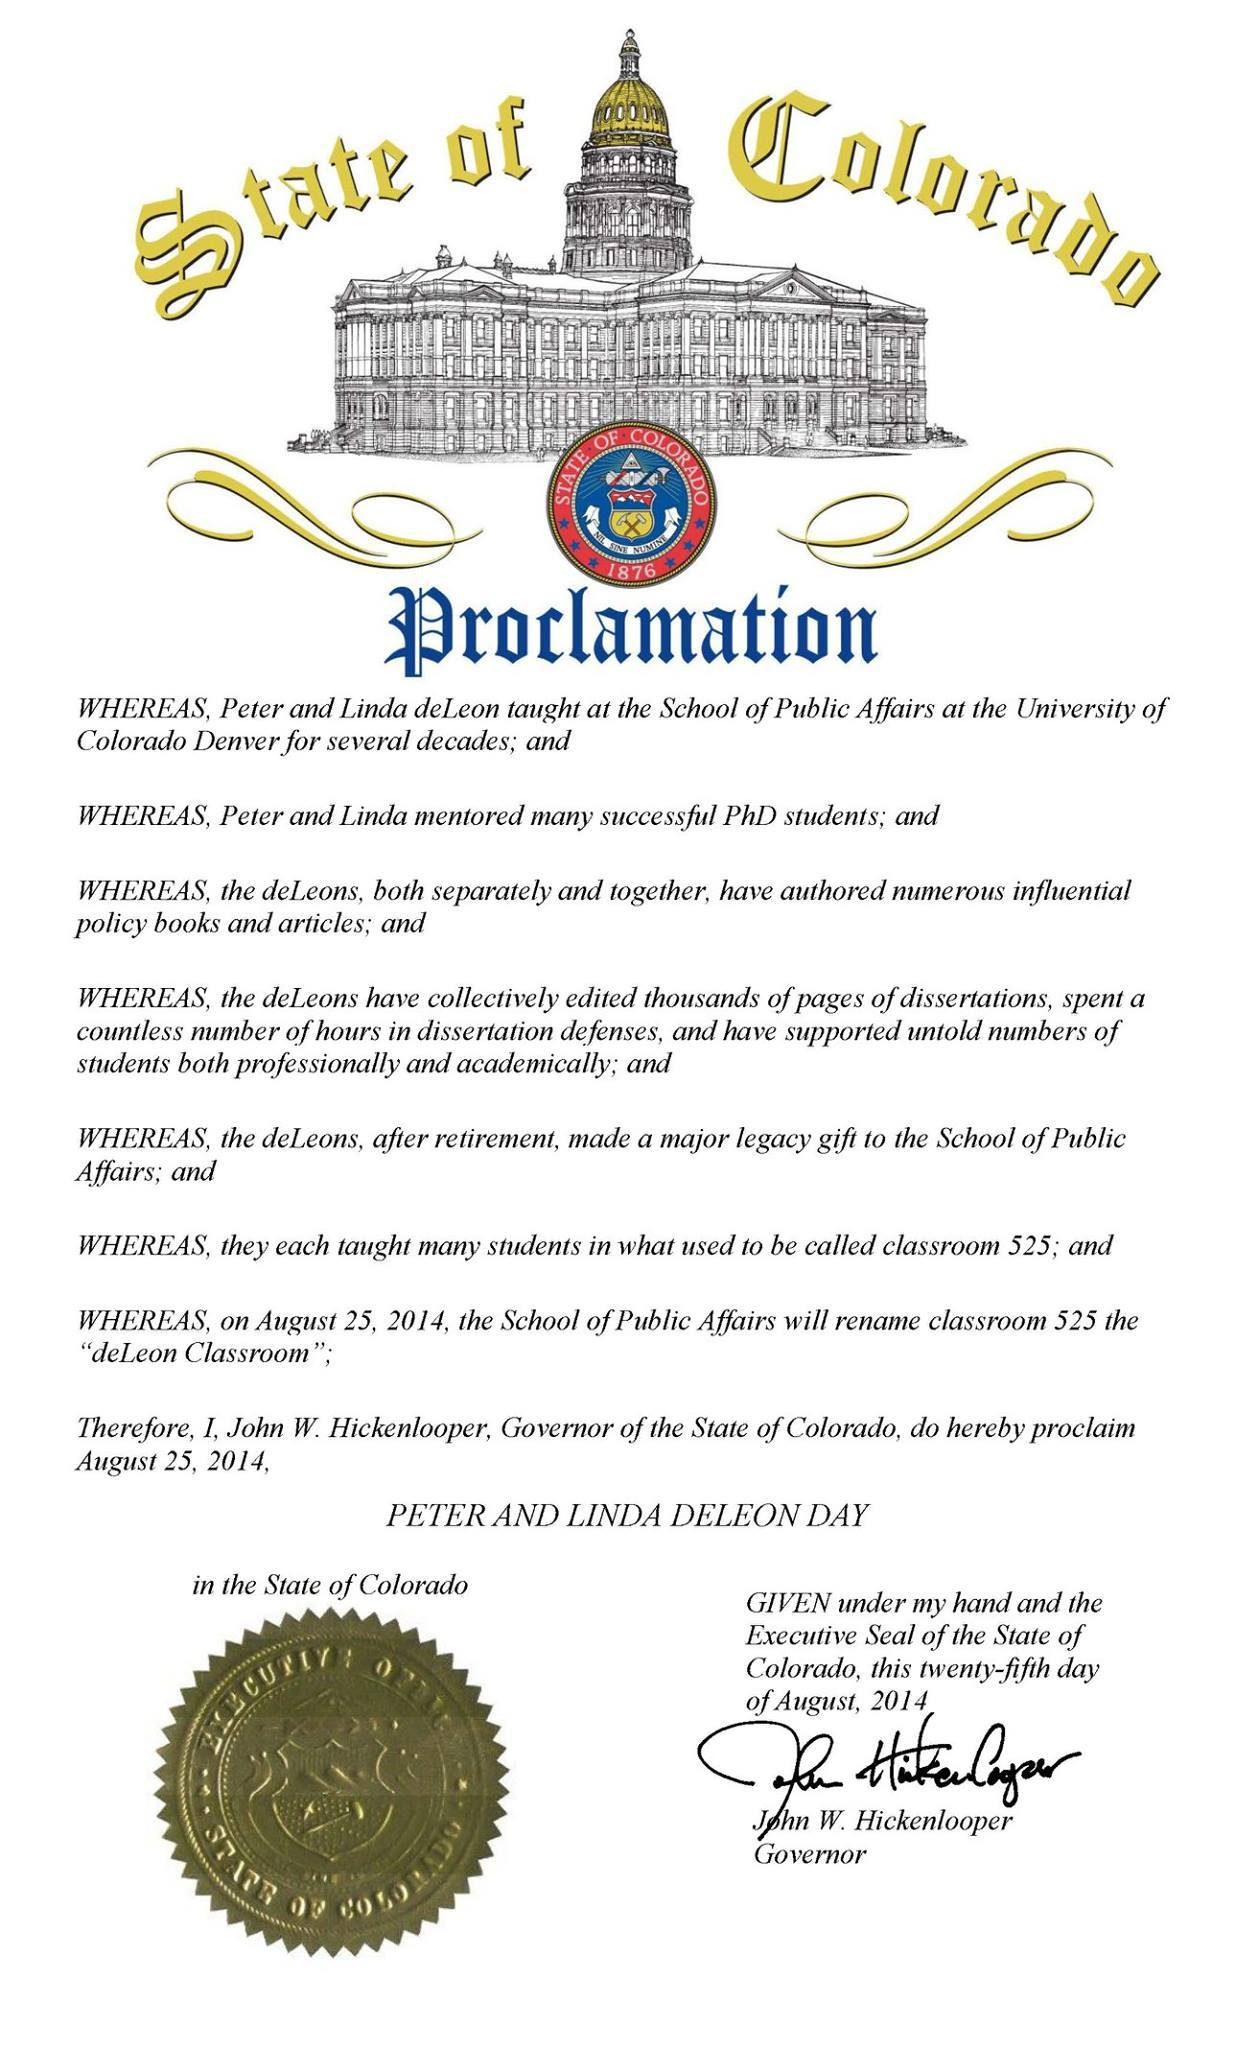 Gov. Hickenlooper's proclamation